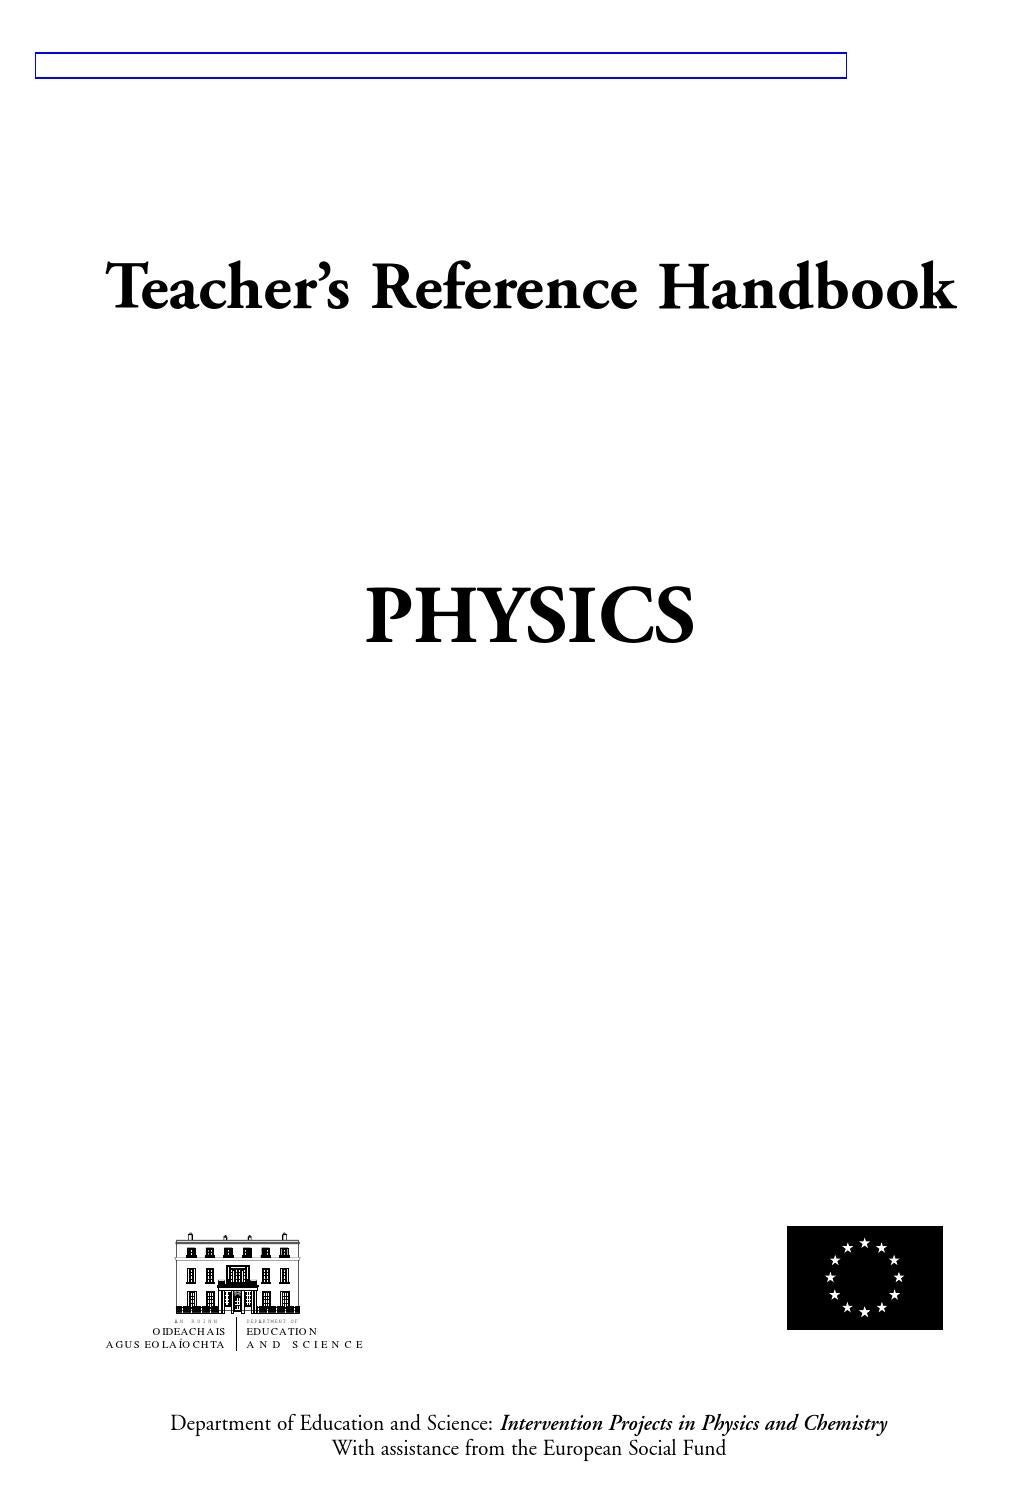 Teachers Book Physics1 1 By Nick Ioannou Issuu Ldr Circuit Final Construction On Vero Board Can Be Seen In The Next